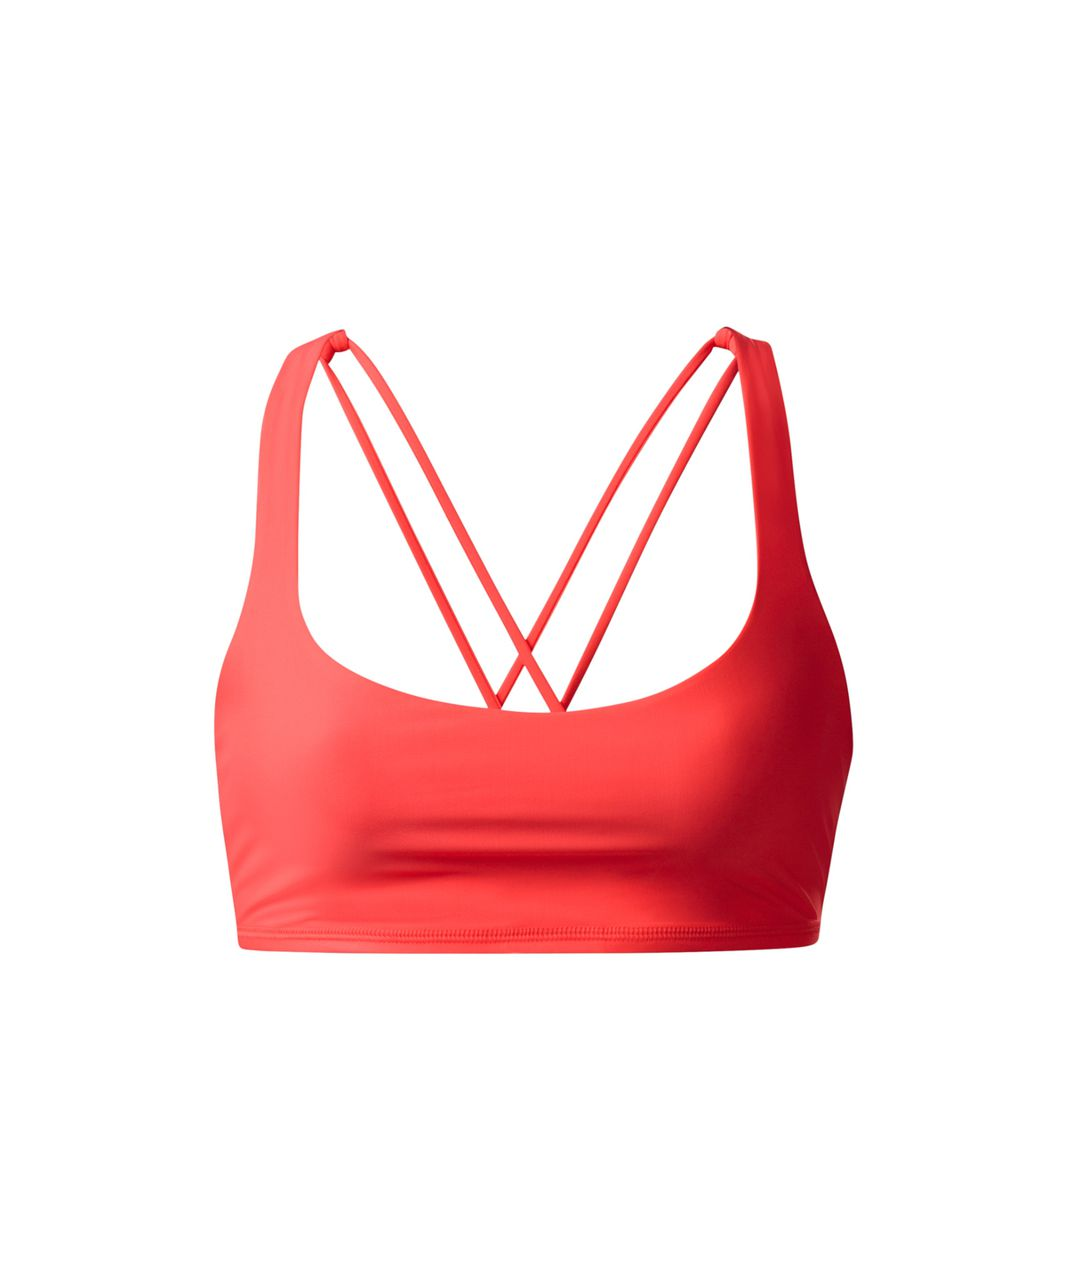 Lululemon Free To Be Bra - Cape Red